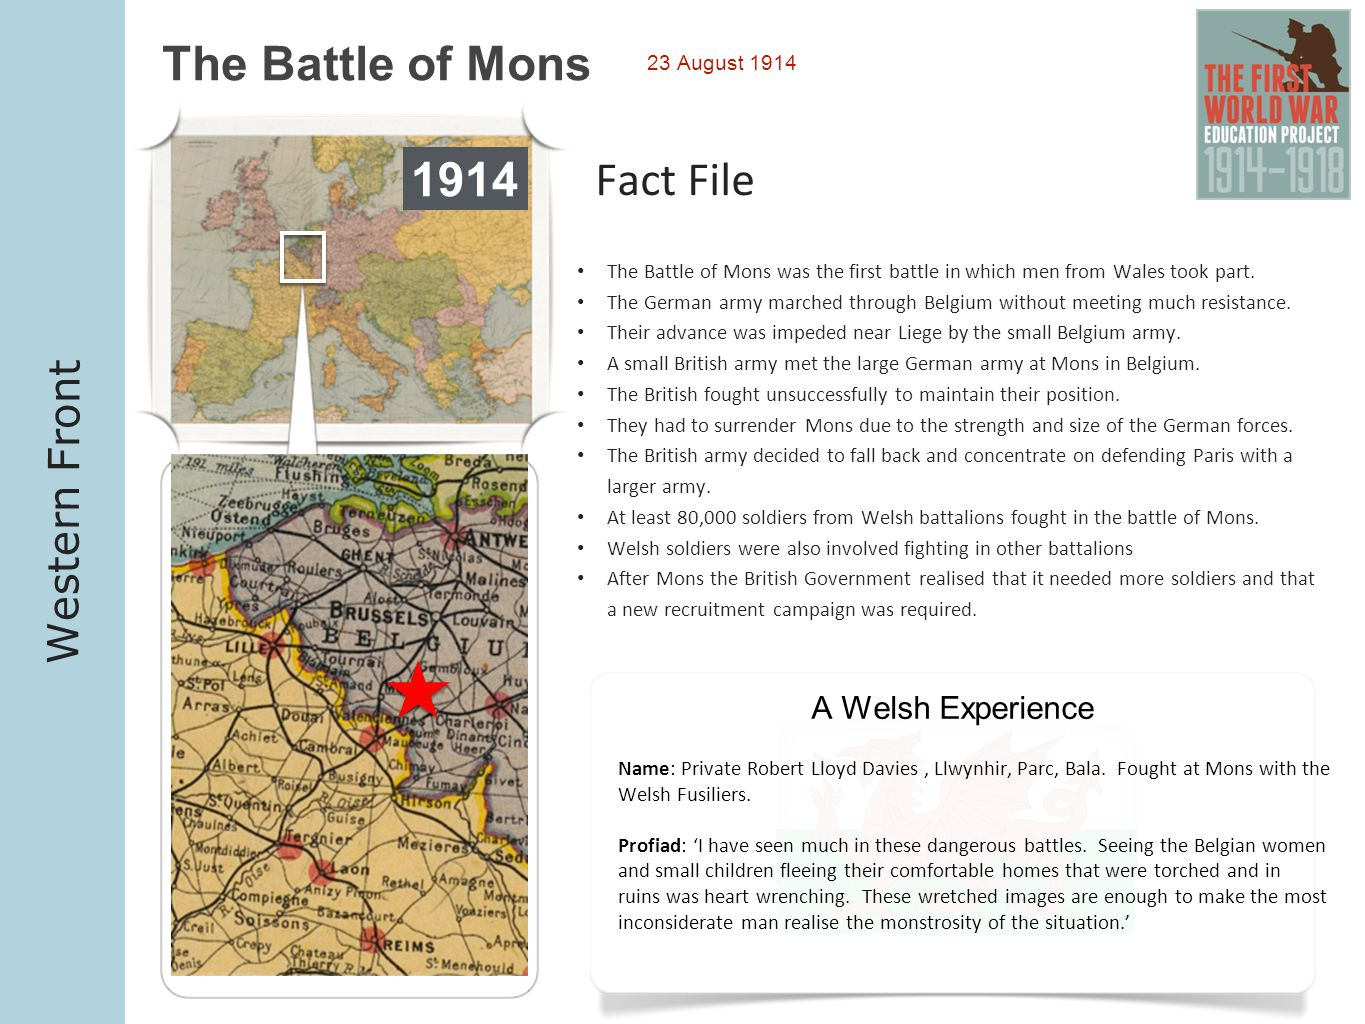 1914 1914 The Battle of Mons 1914 Fact File Western Front